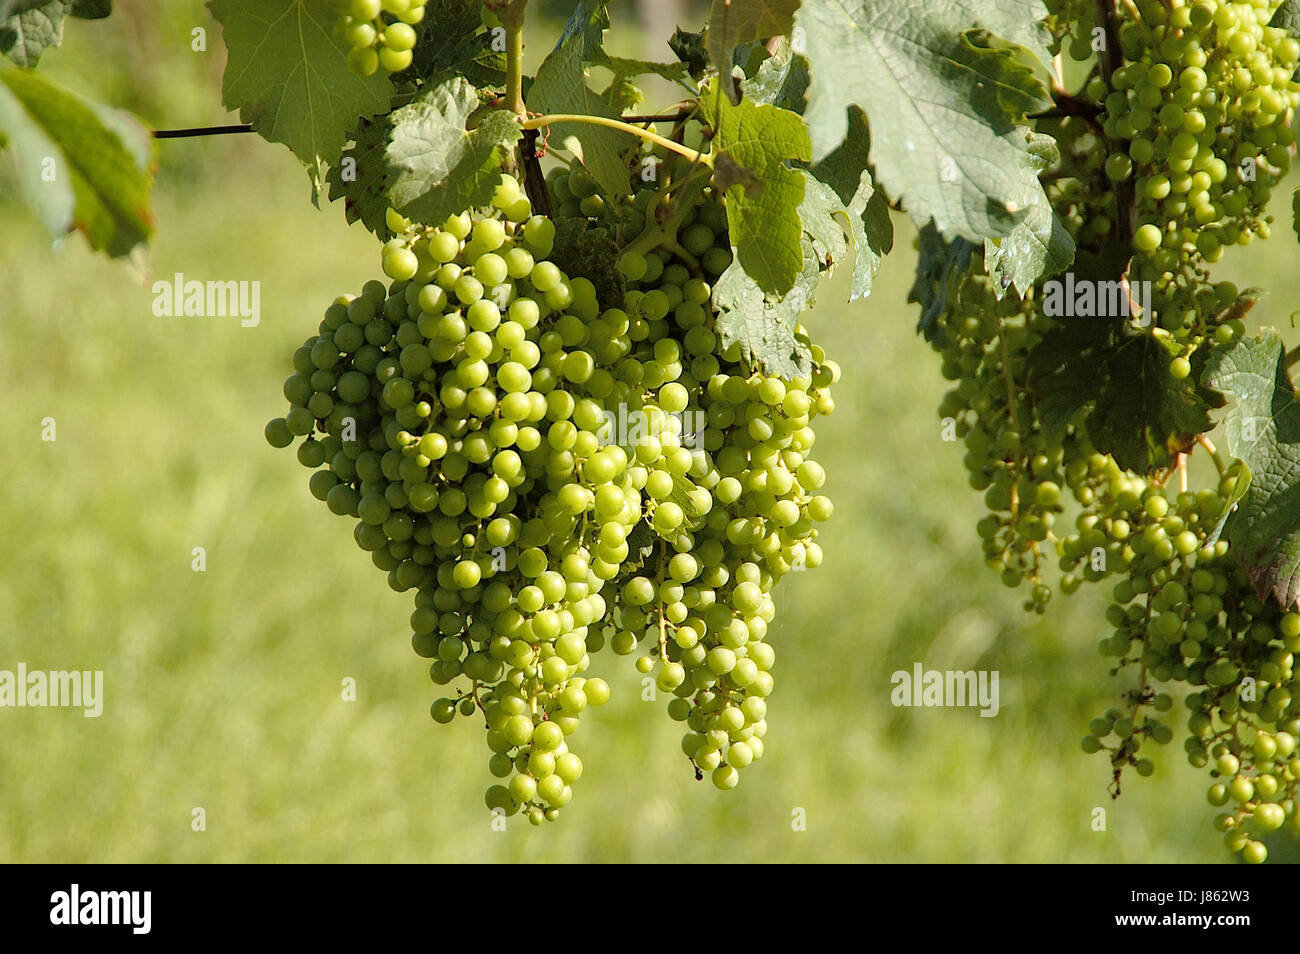 grapes progenies fruits cultivation of wine vine grape vine grape-vine bunches Stock Photo